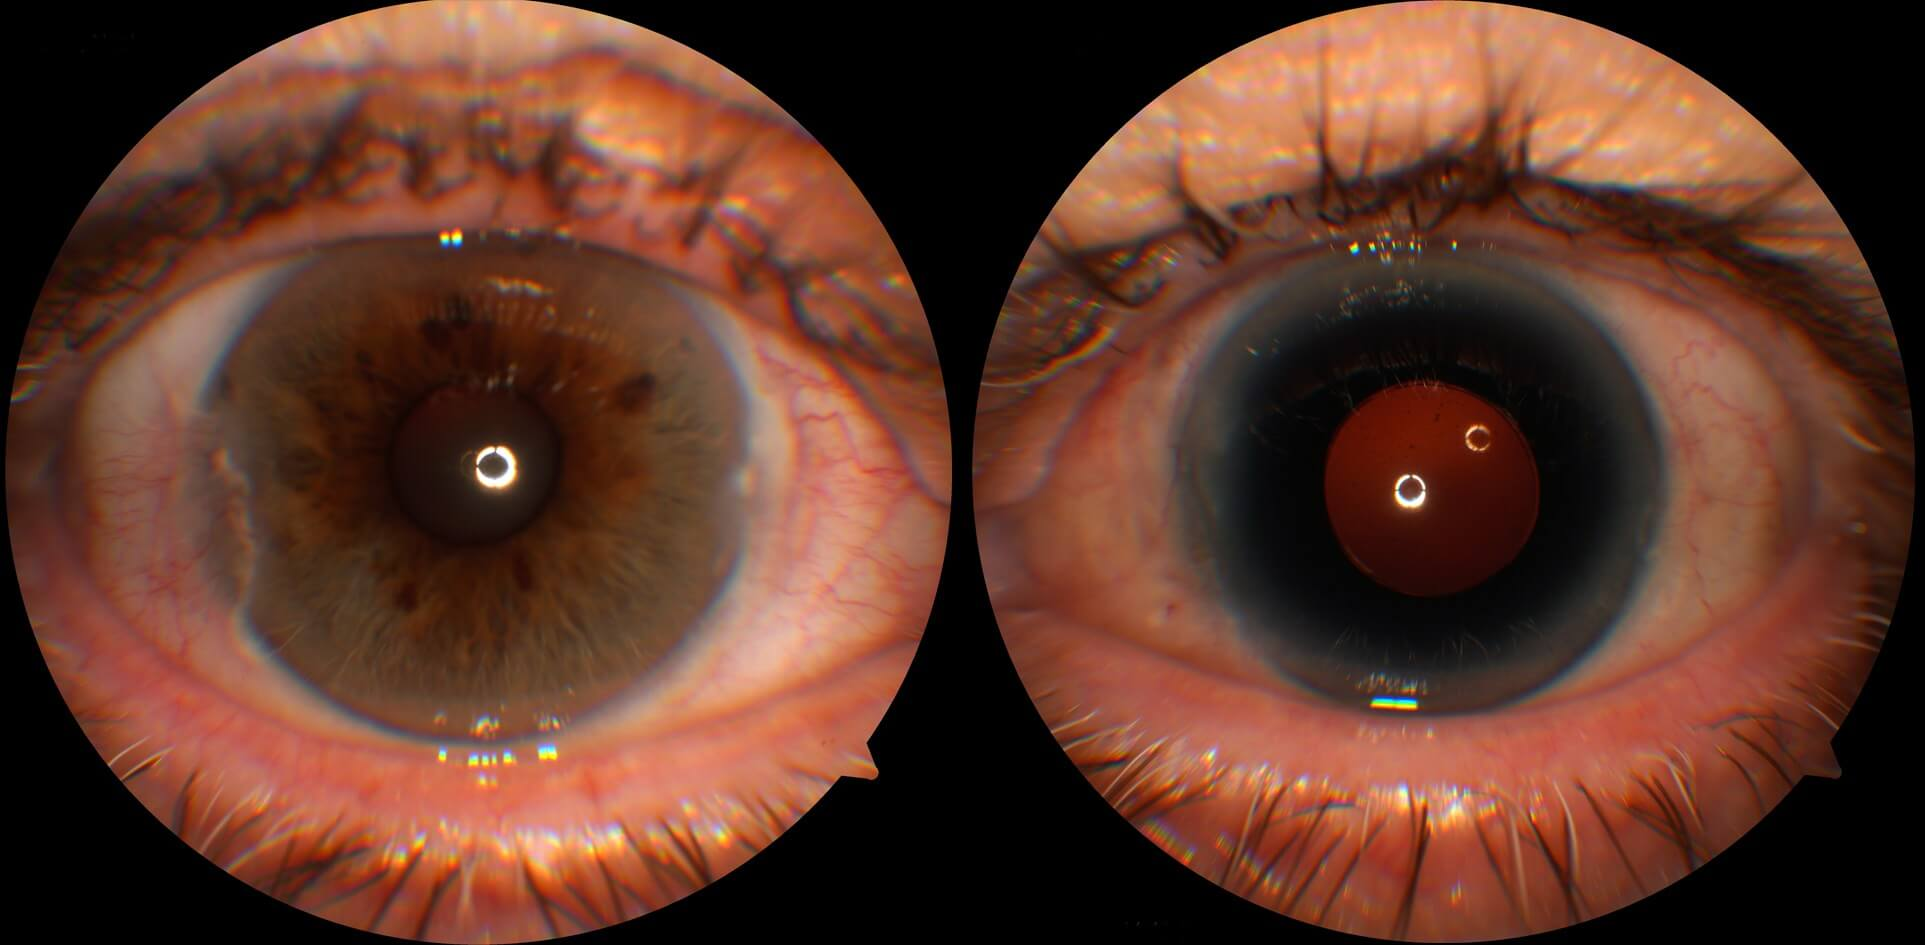 Colour photographs of the right and left eyes. The right eye is normal. The left eye has a Morcher Type 68 Intraocular lens that has been sutured internally to the sclera. This intraocular lens has a prosthetic iris.